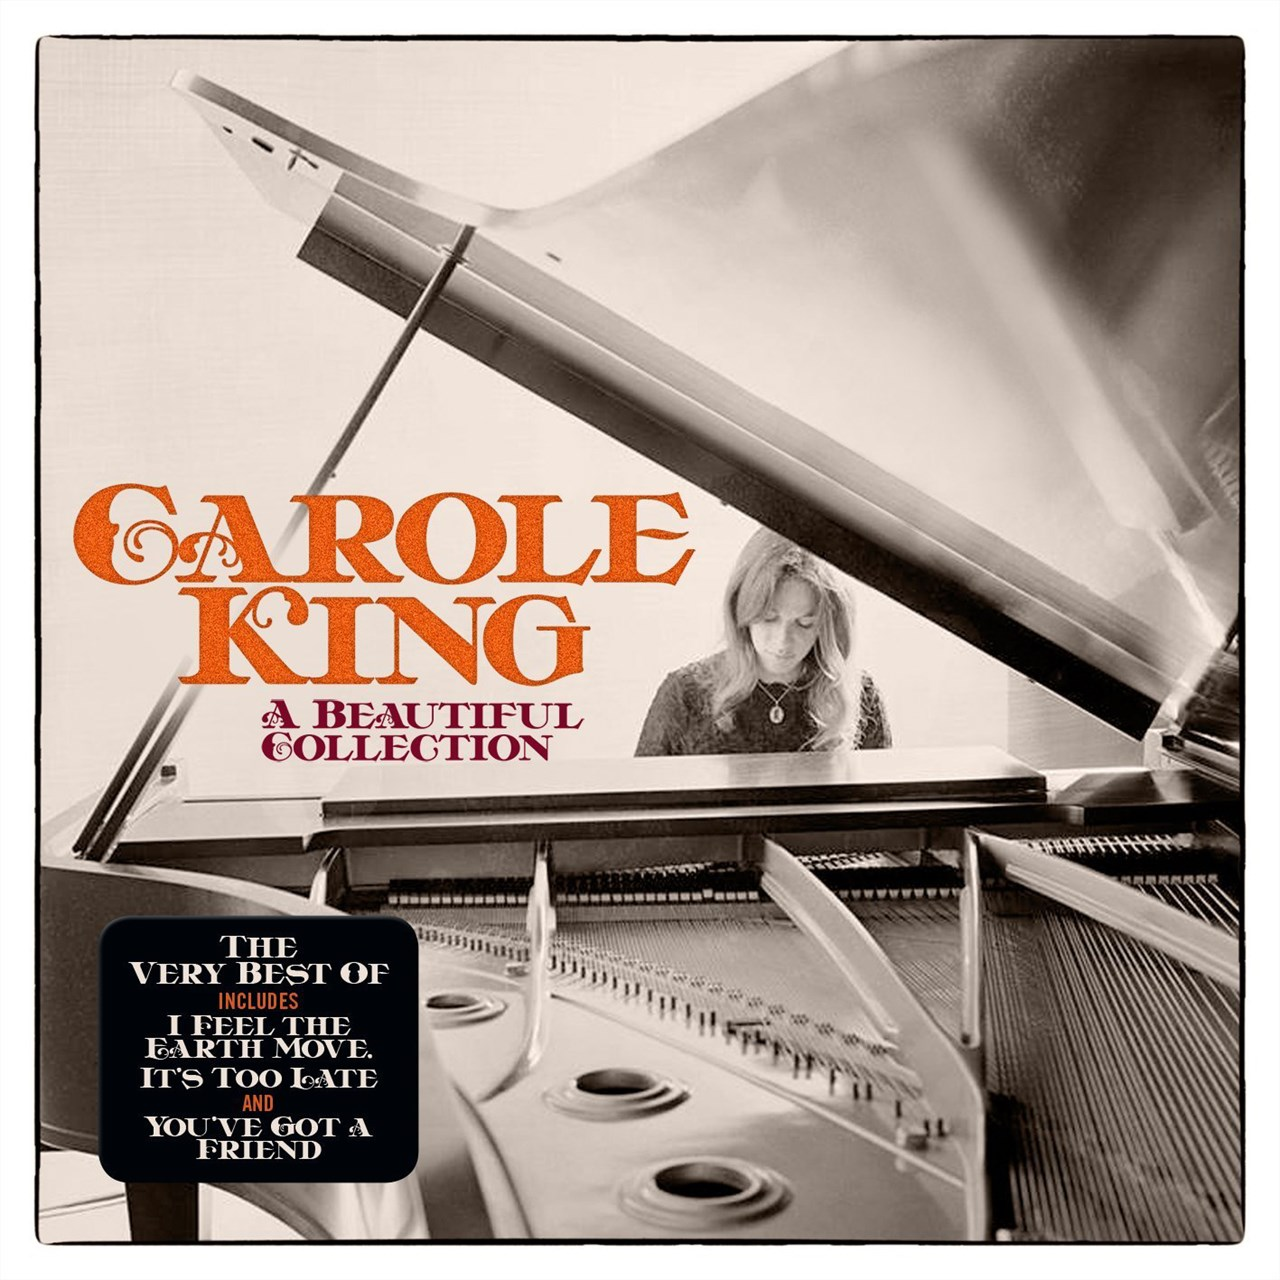 A Beautiful Collection: The Very Best of Carole King - 1